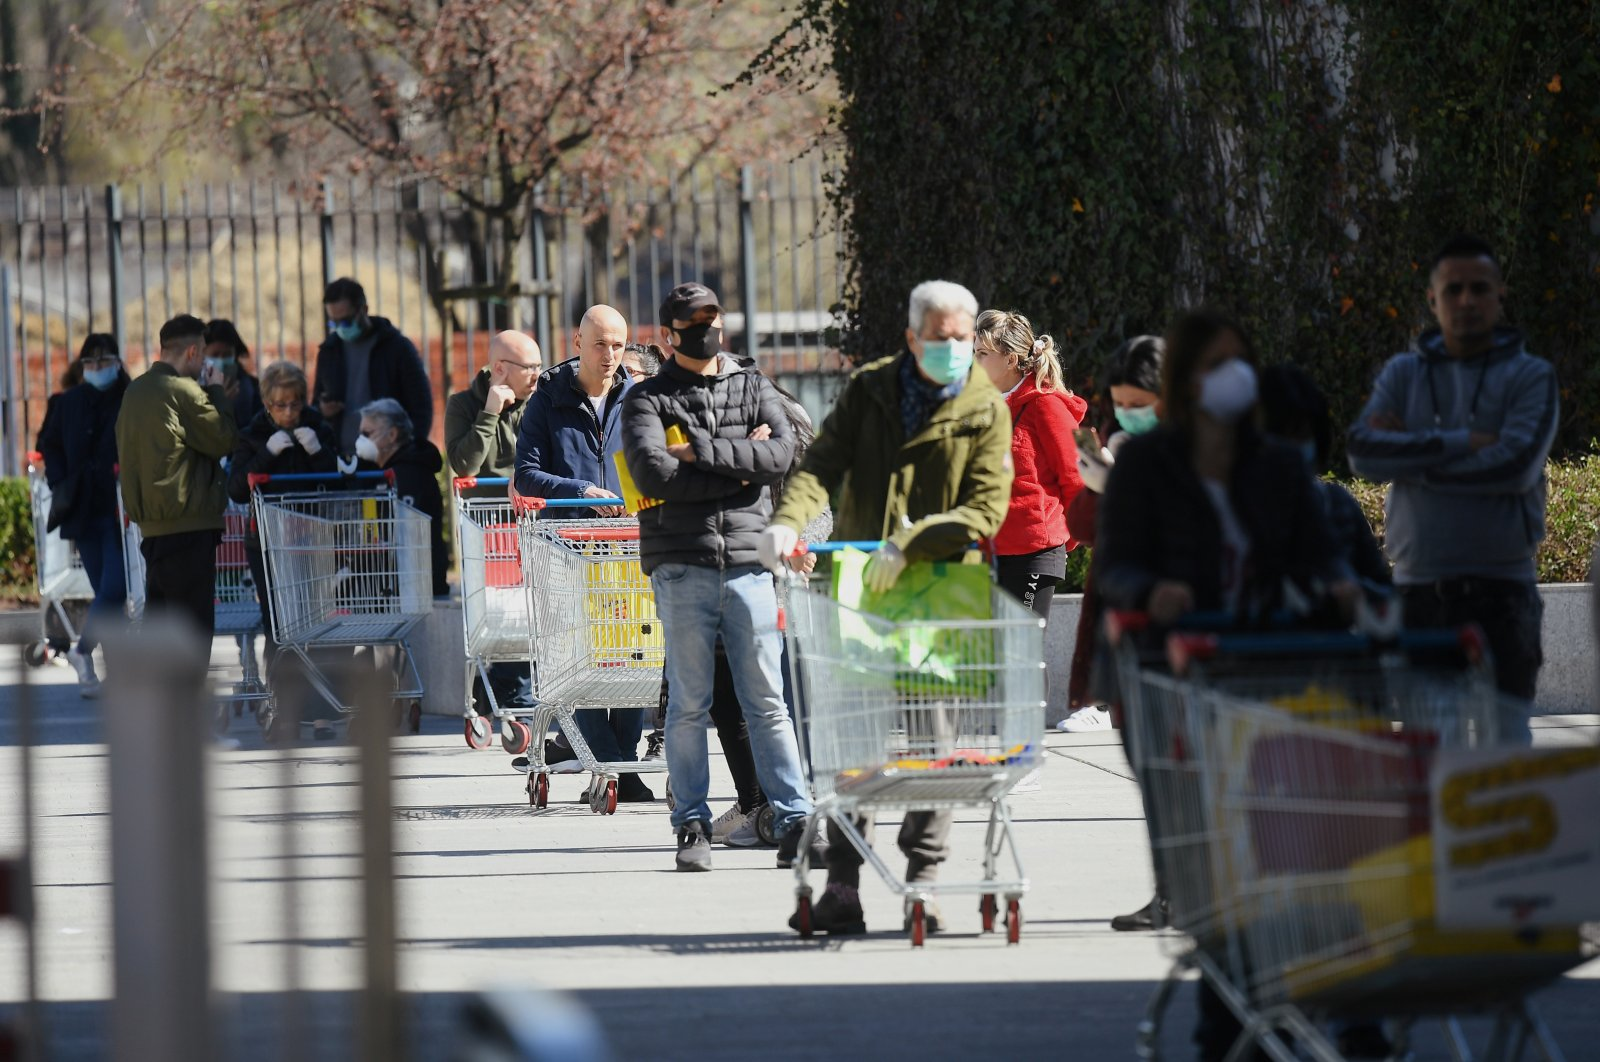 People wait in front of a supermarket on the second day of the lockdown across the country imposed to slow the outbreak of the novel coronavirus, Milan, Italy, Wednesday, March 11, 2020. (Reuters Photo)